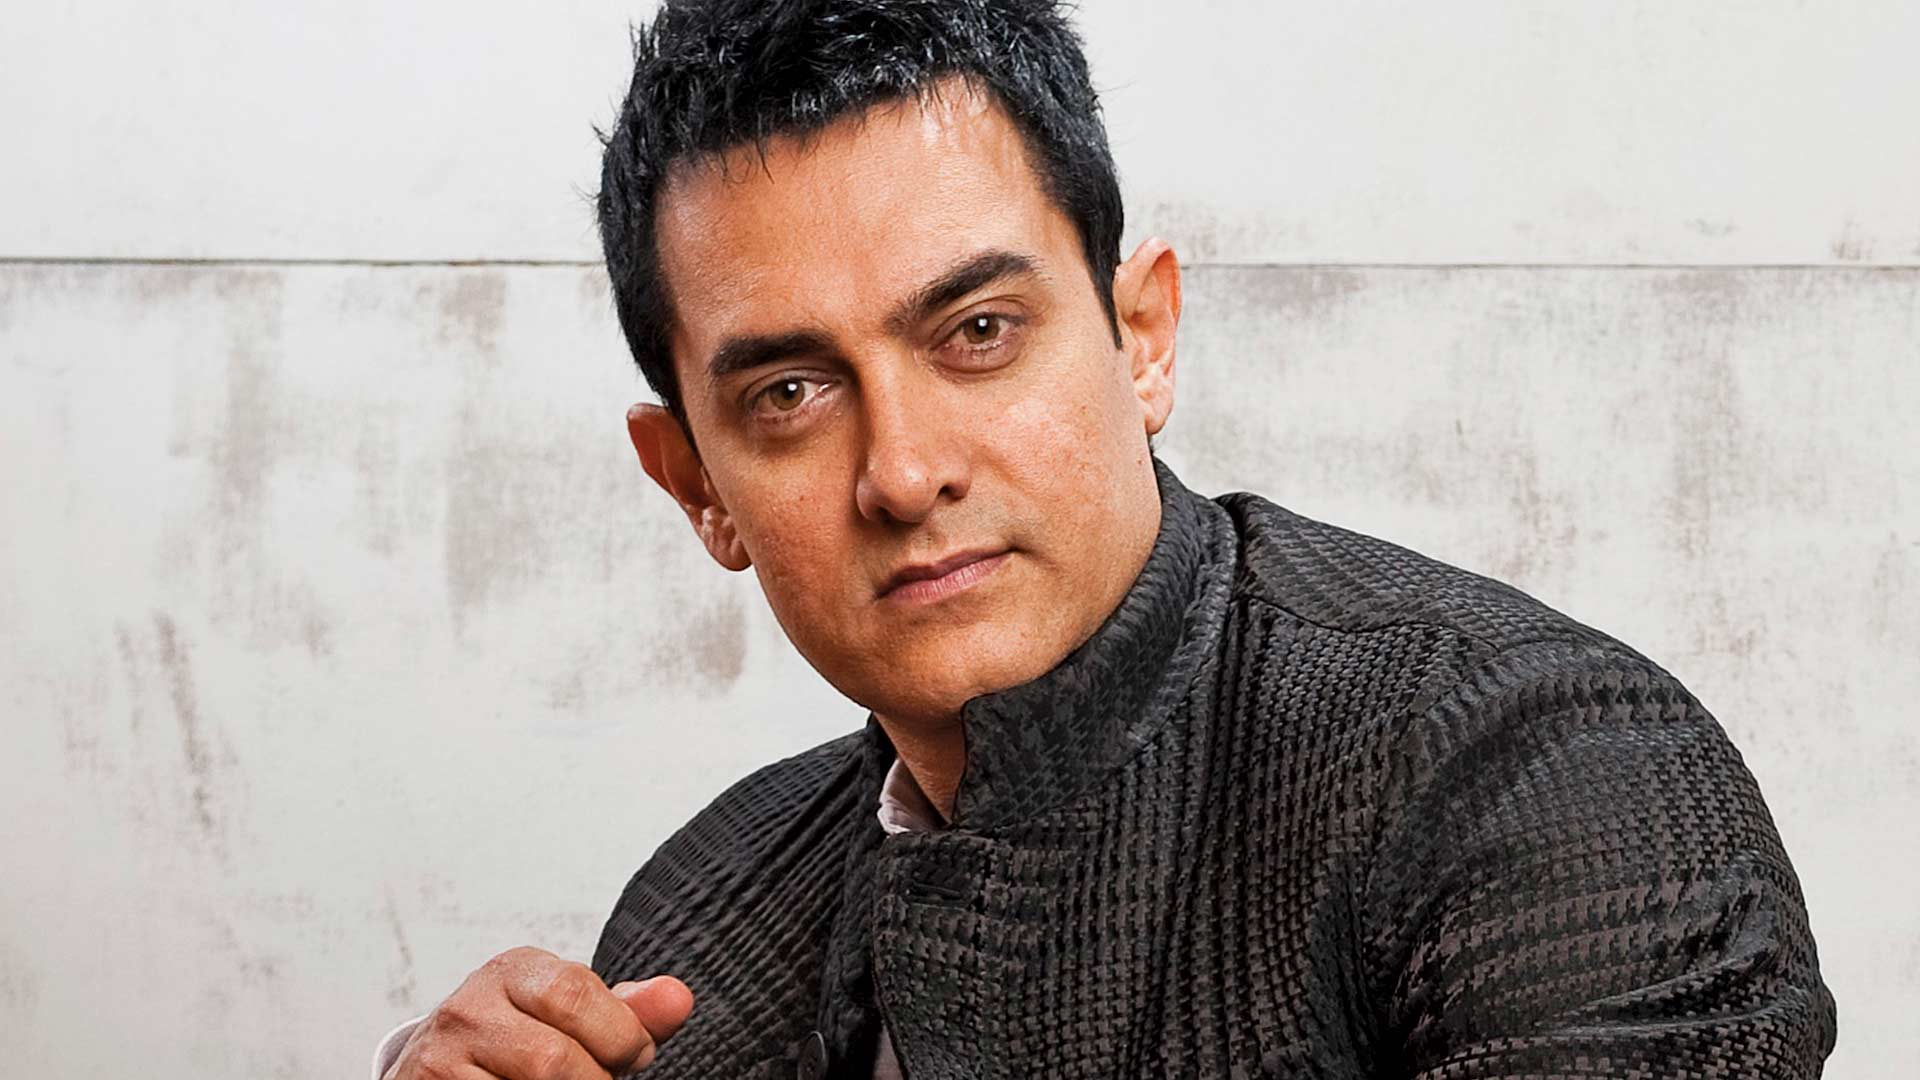 Aamir Khan Director and Producer